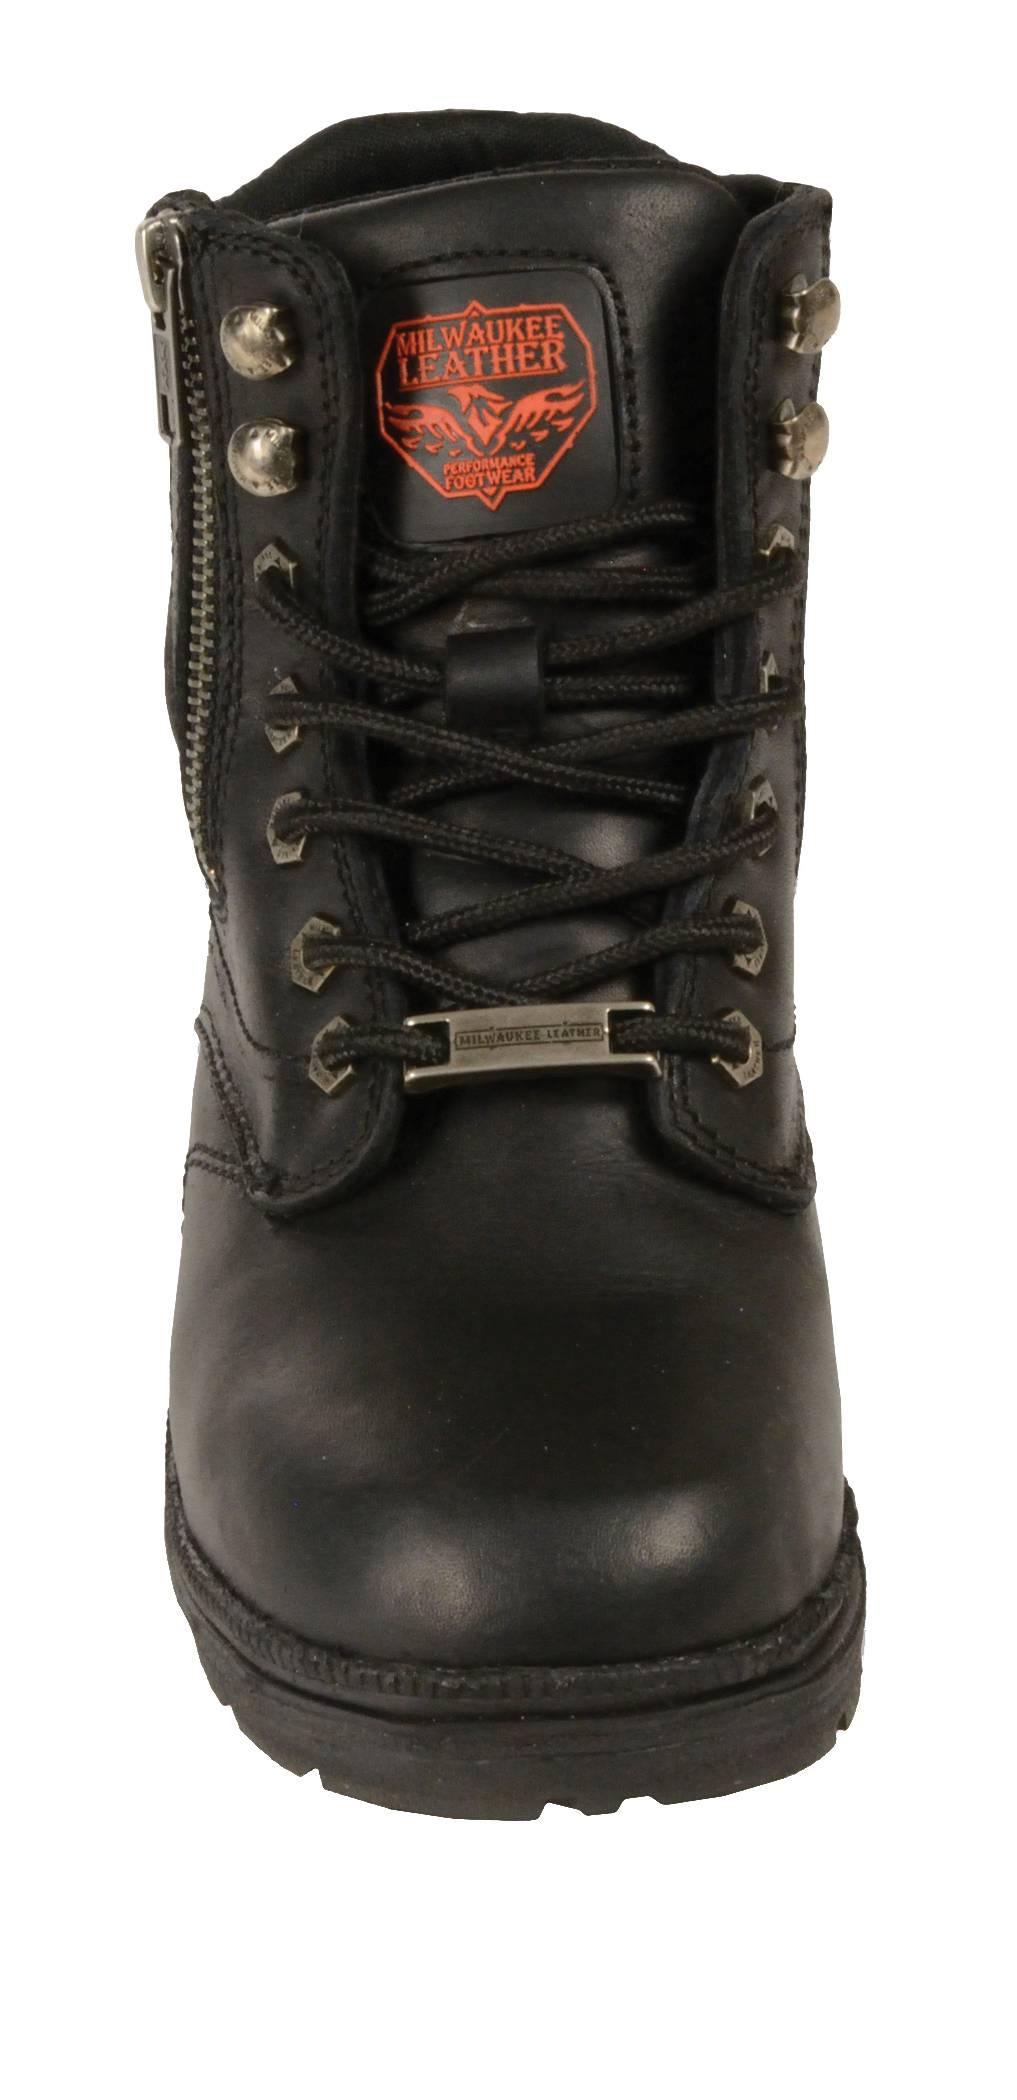 Ladies Black Leather Lace Up Riding Boots W Side Zipper